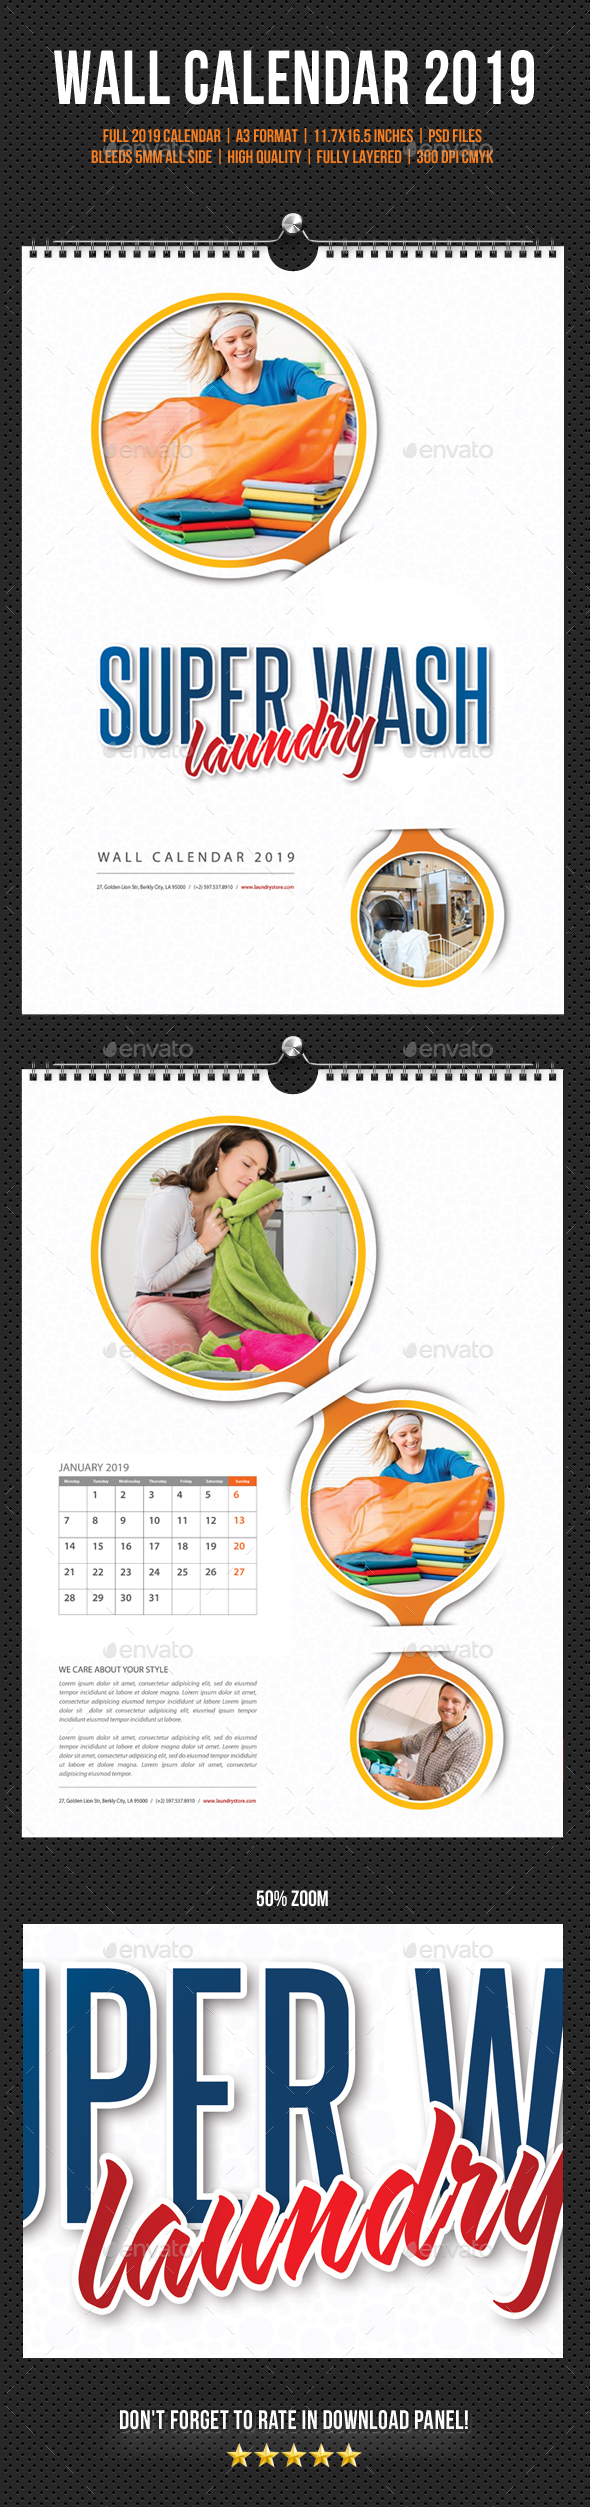 Laundry Services Wall Calendar 2019 - Calendars Stationery